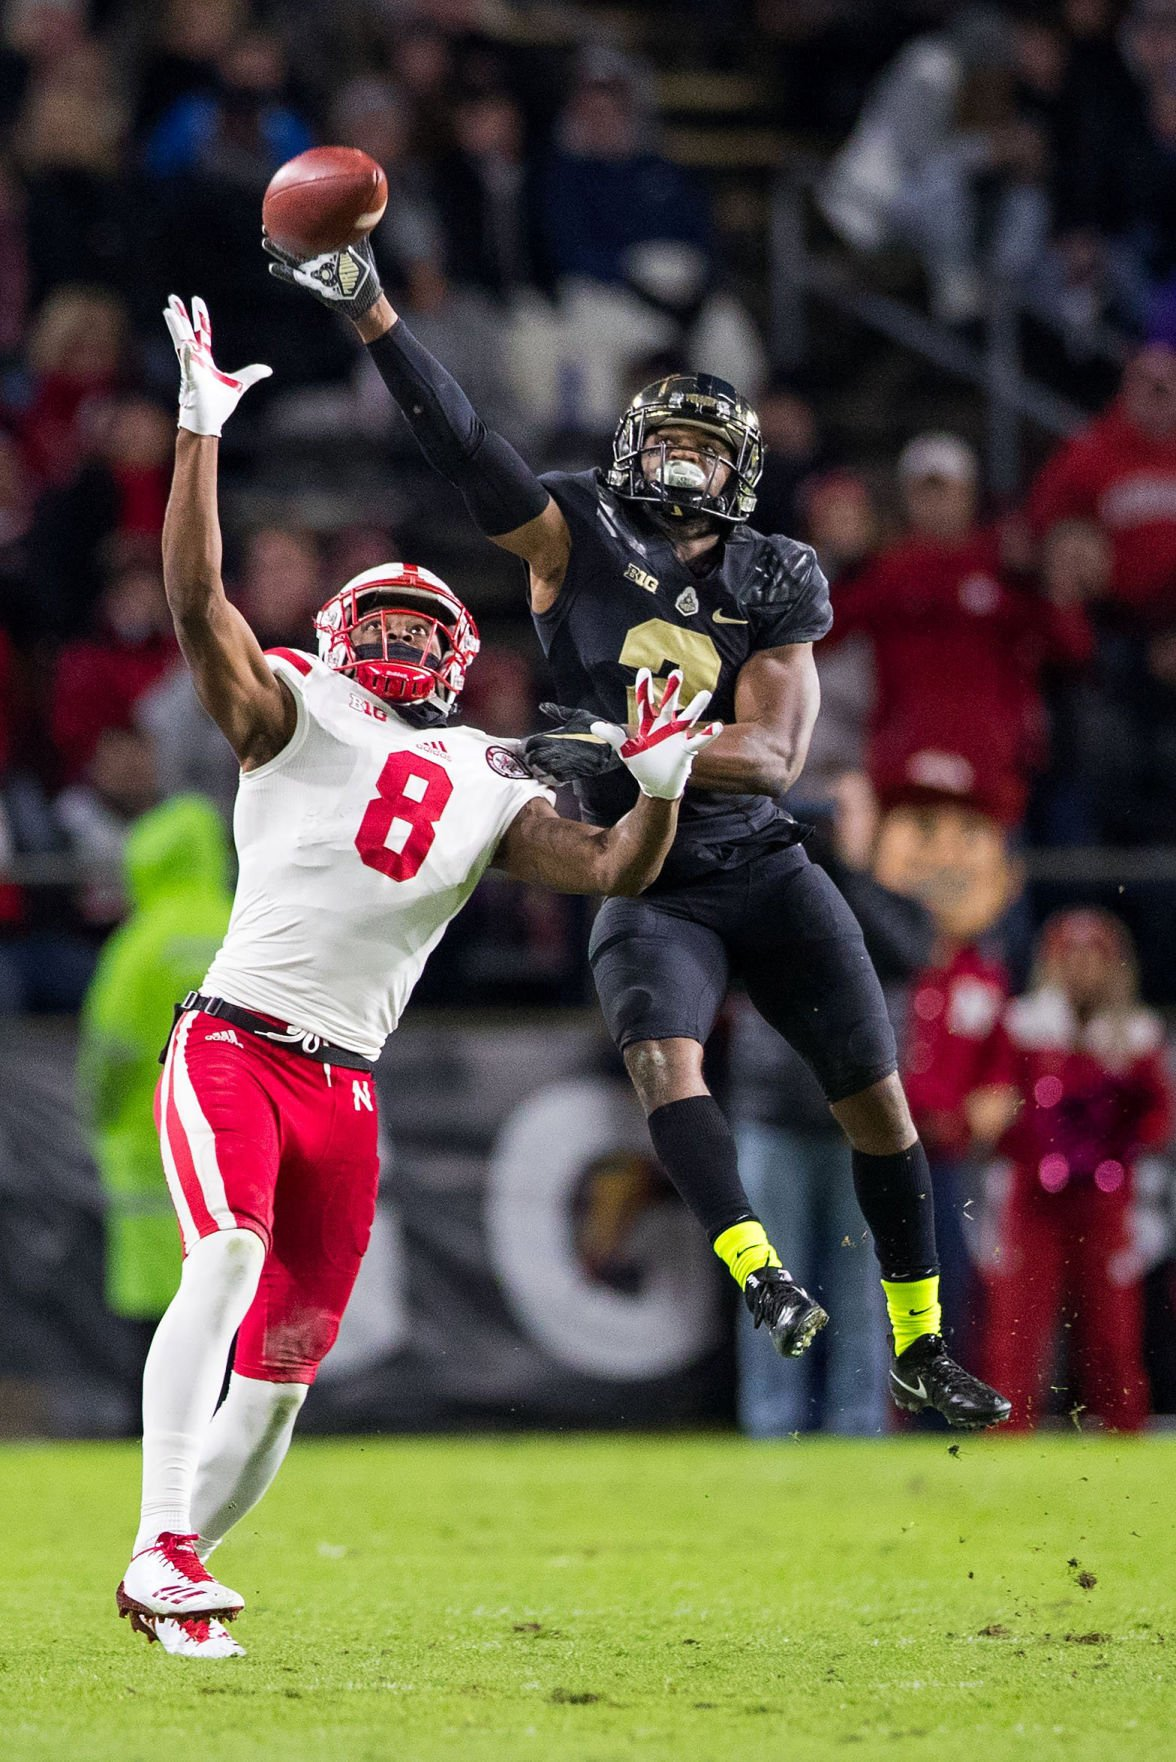 McKewon Lack of balance may irk some but Husker passing game is starting to run pretty smoothly Football